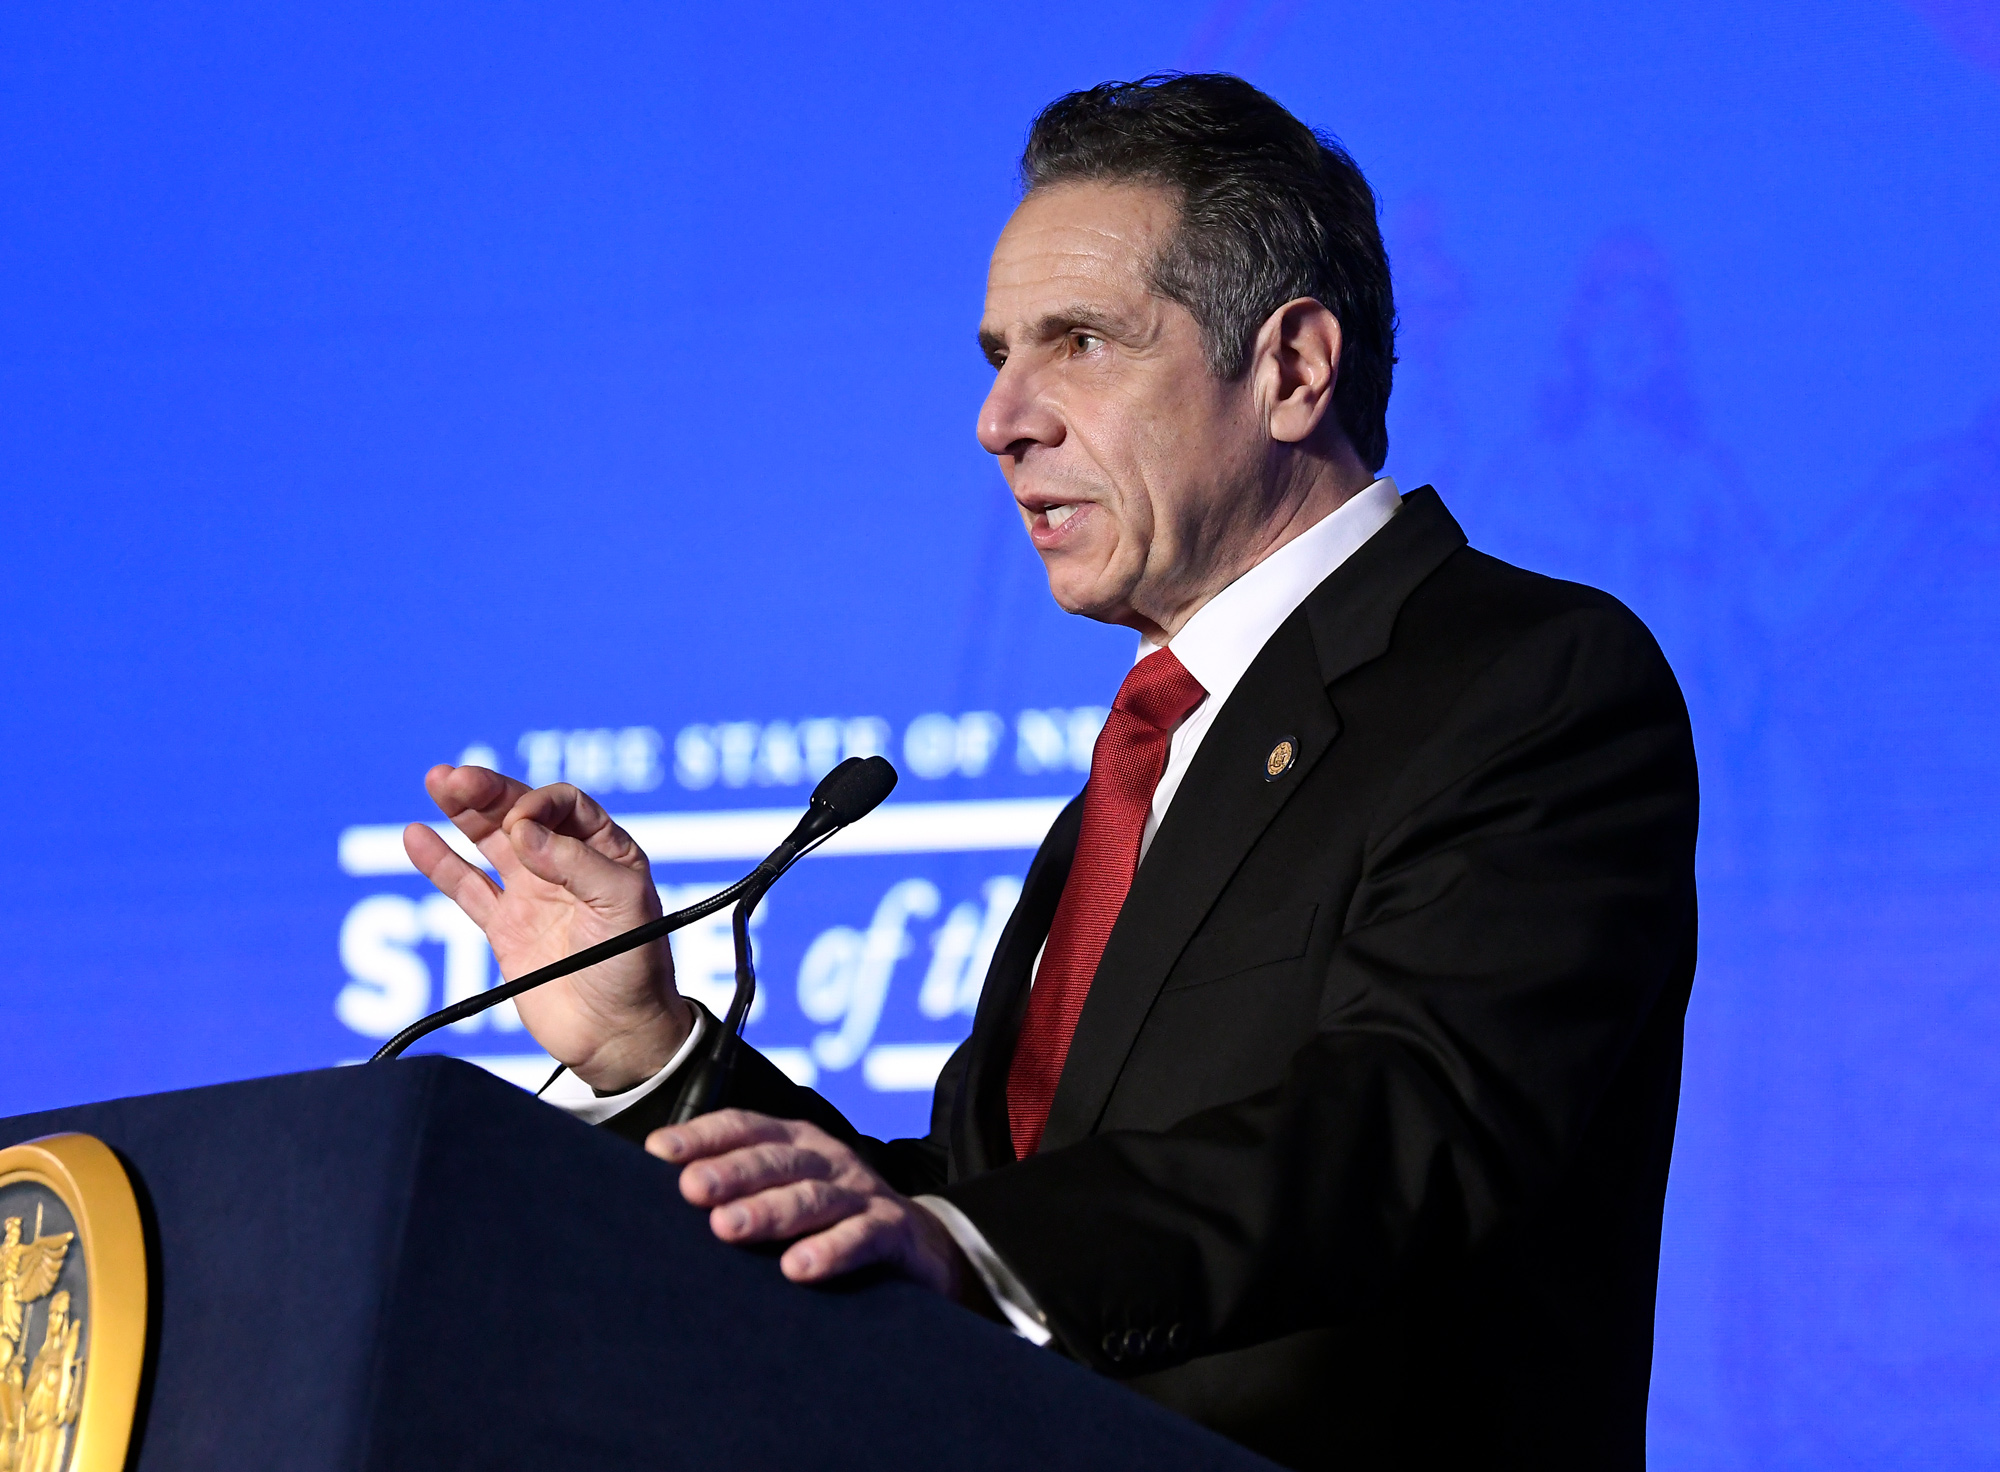 New York Gov. Andrew Cuomo delivers his State of the State address virtually from The War Room at the state Capitol on January 11 in Albany, New York.